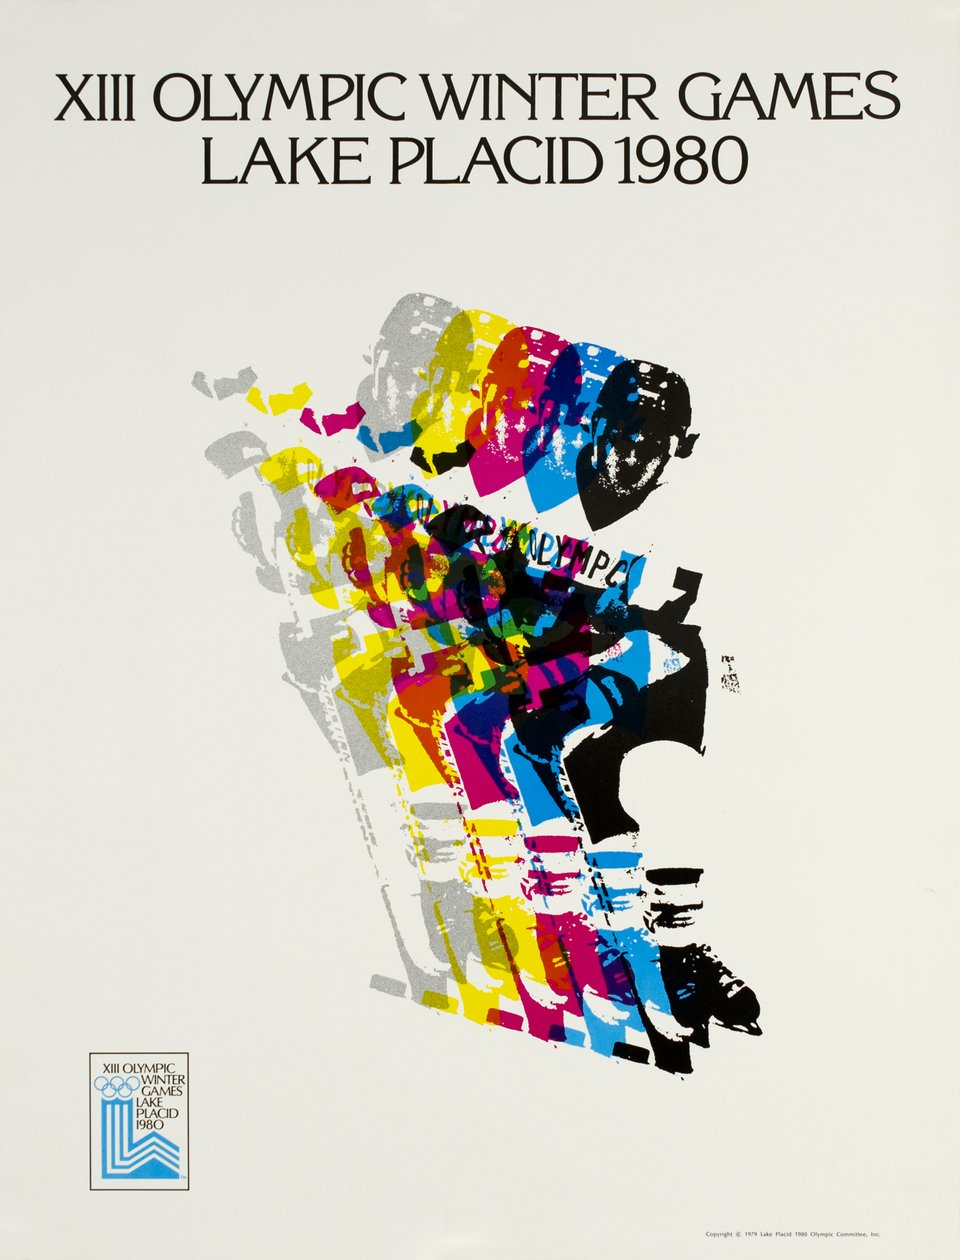 Lake Placid 1980, XIII Olympic Winter Games – Affiche ancienne – Robert MADDEN – 1980